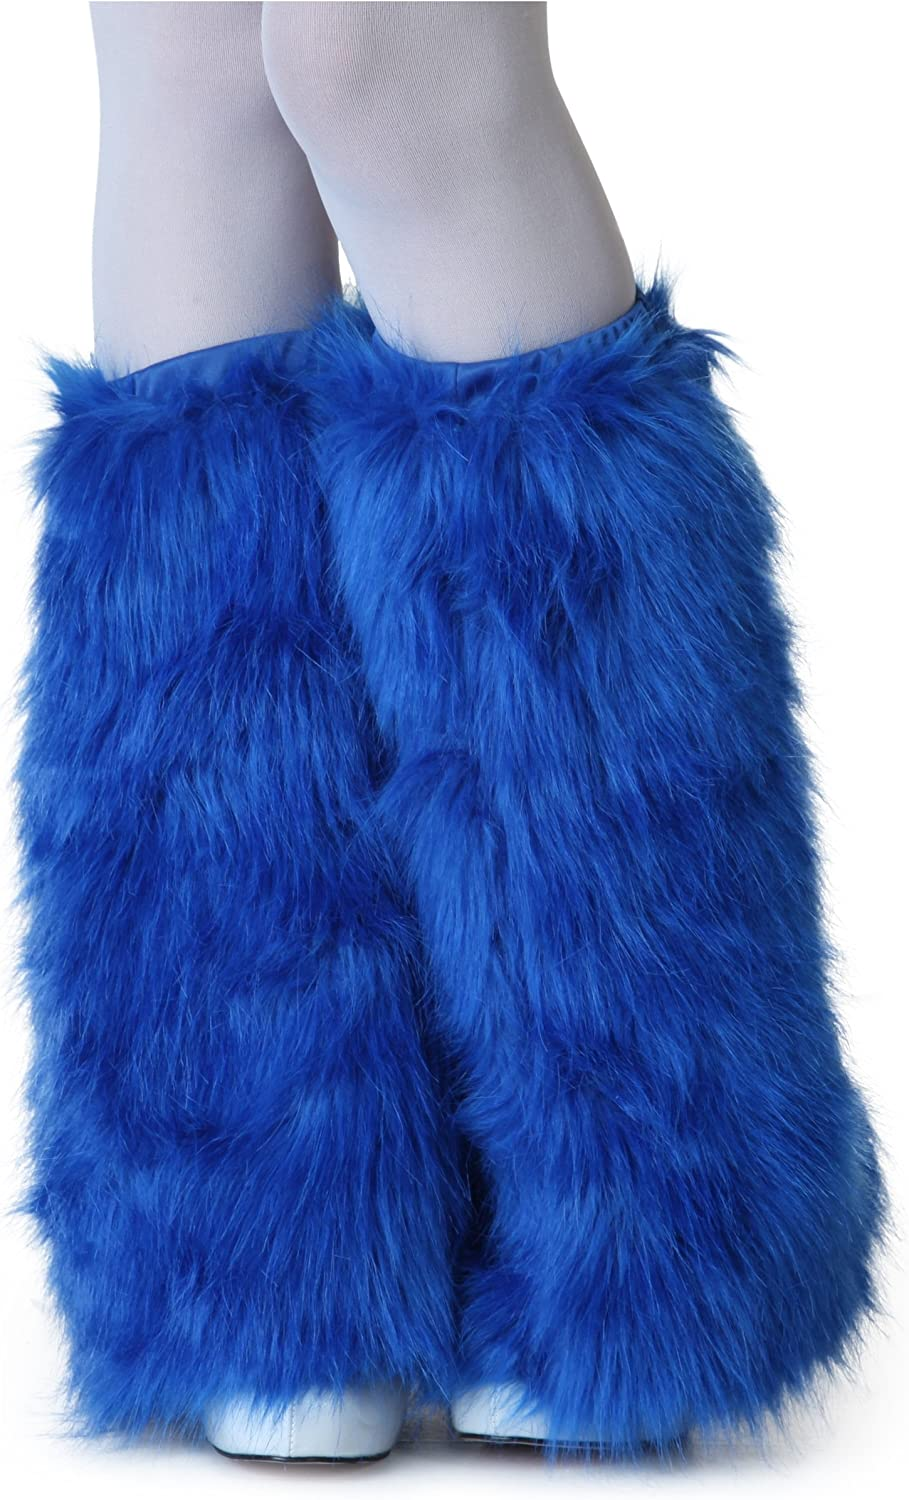 Adult Royal Blue Furry Boot Covers - ST: Clothing